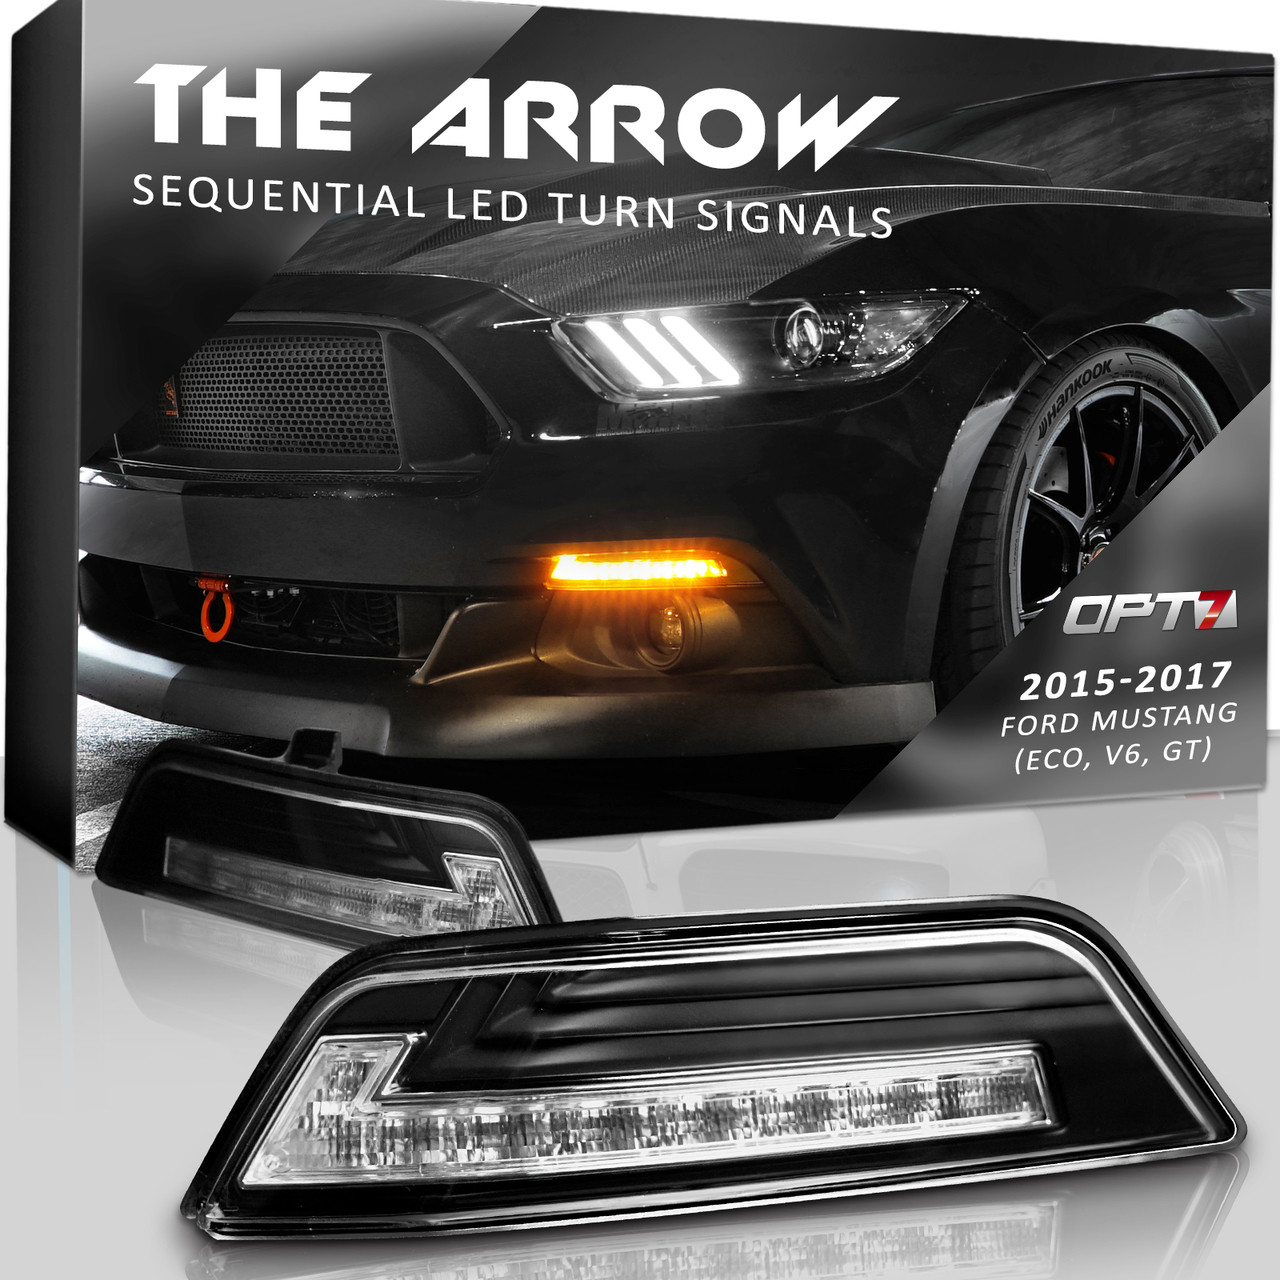 2015 2017 Mustang Led Arrow Turn Signals With Switchback